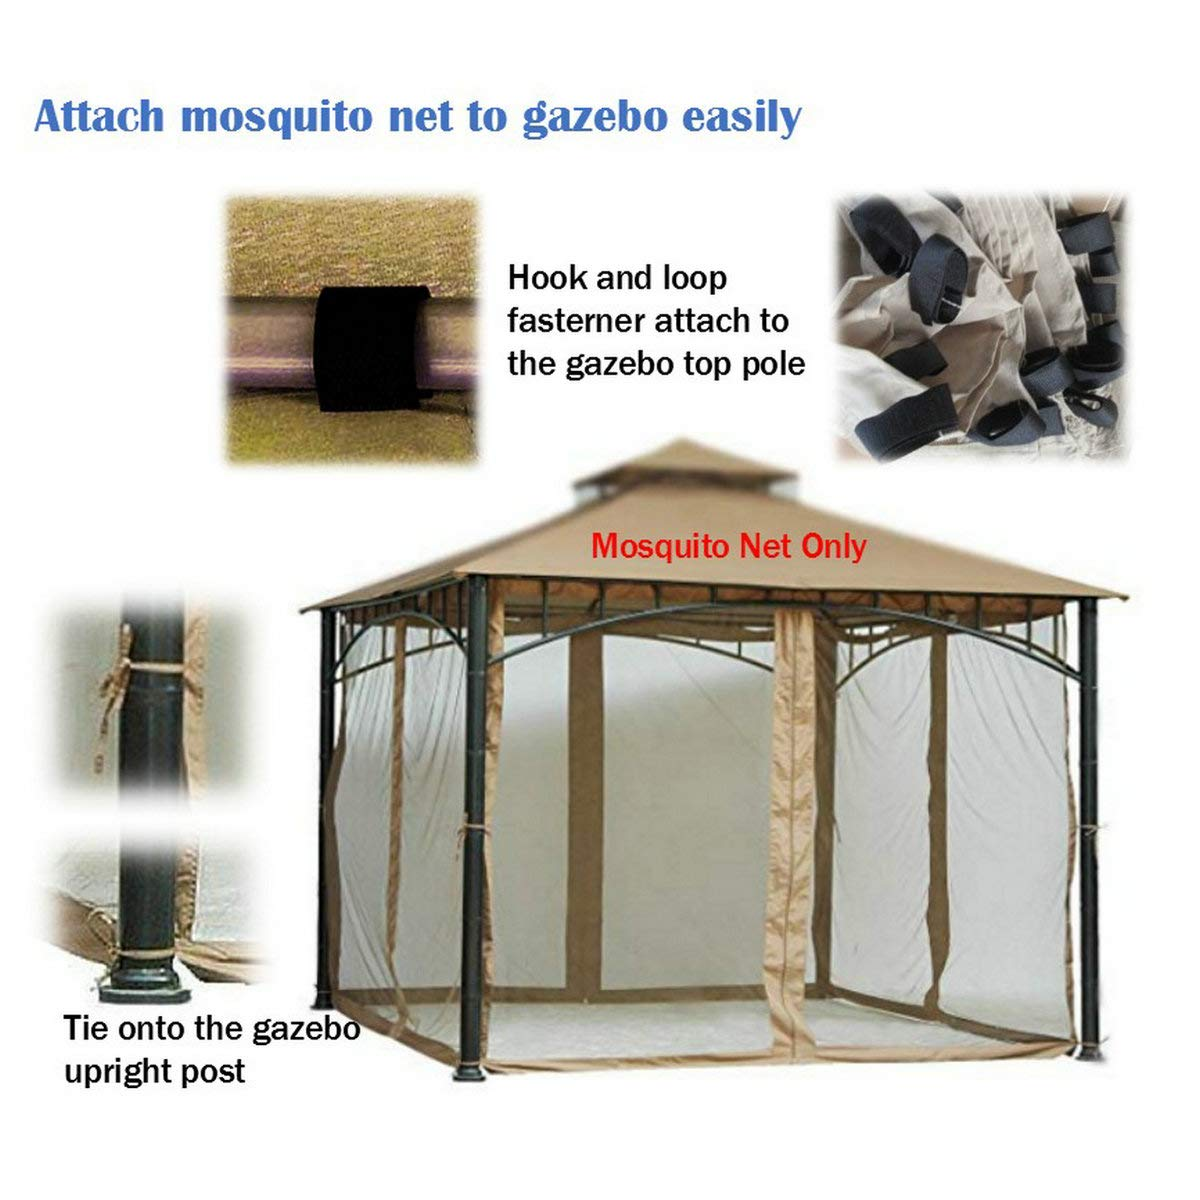 Replacement Mosquito Netting for Gazebo Size 10ft x 10 ft (Gazebo Mosquito Net Only) by PierSurplus (Image #3)